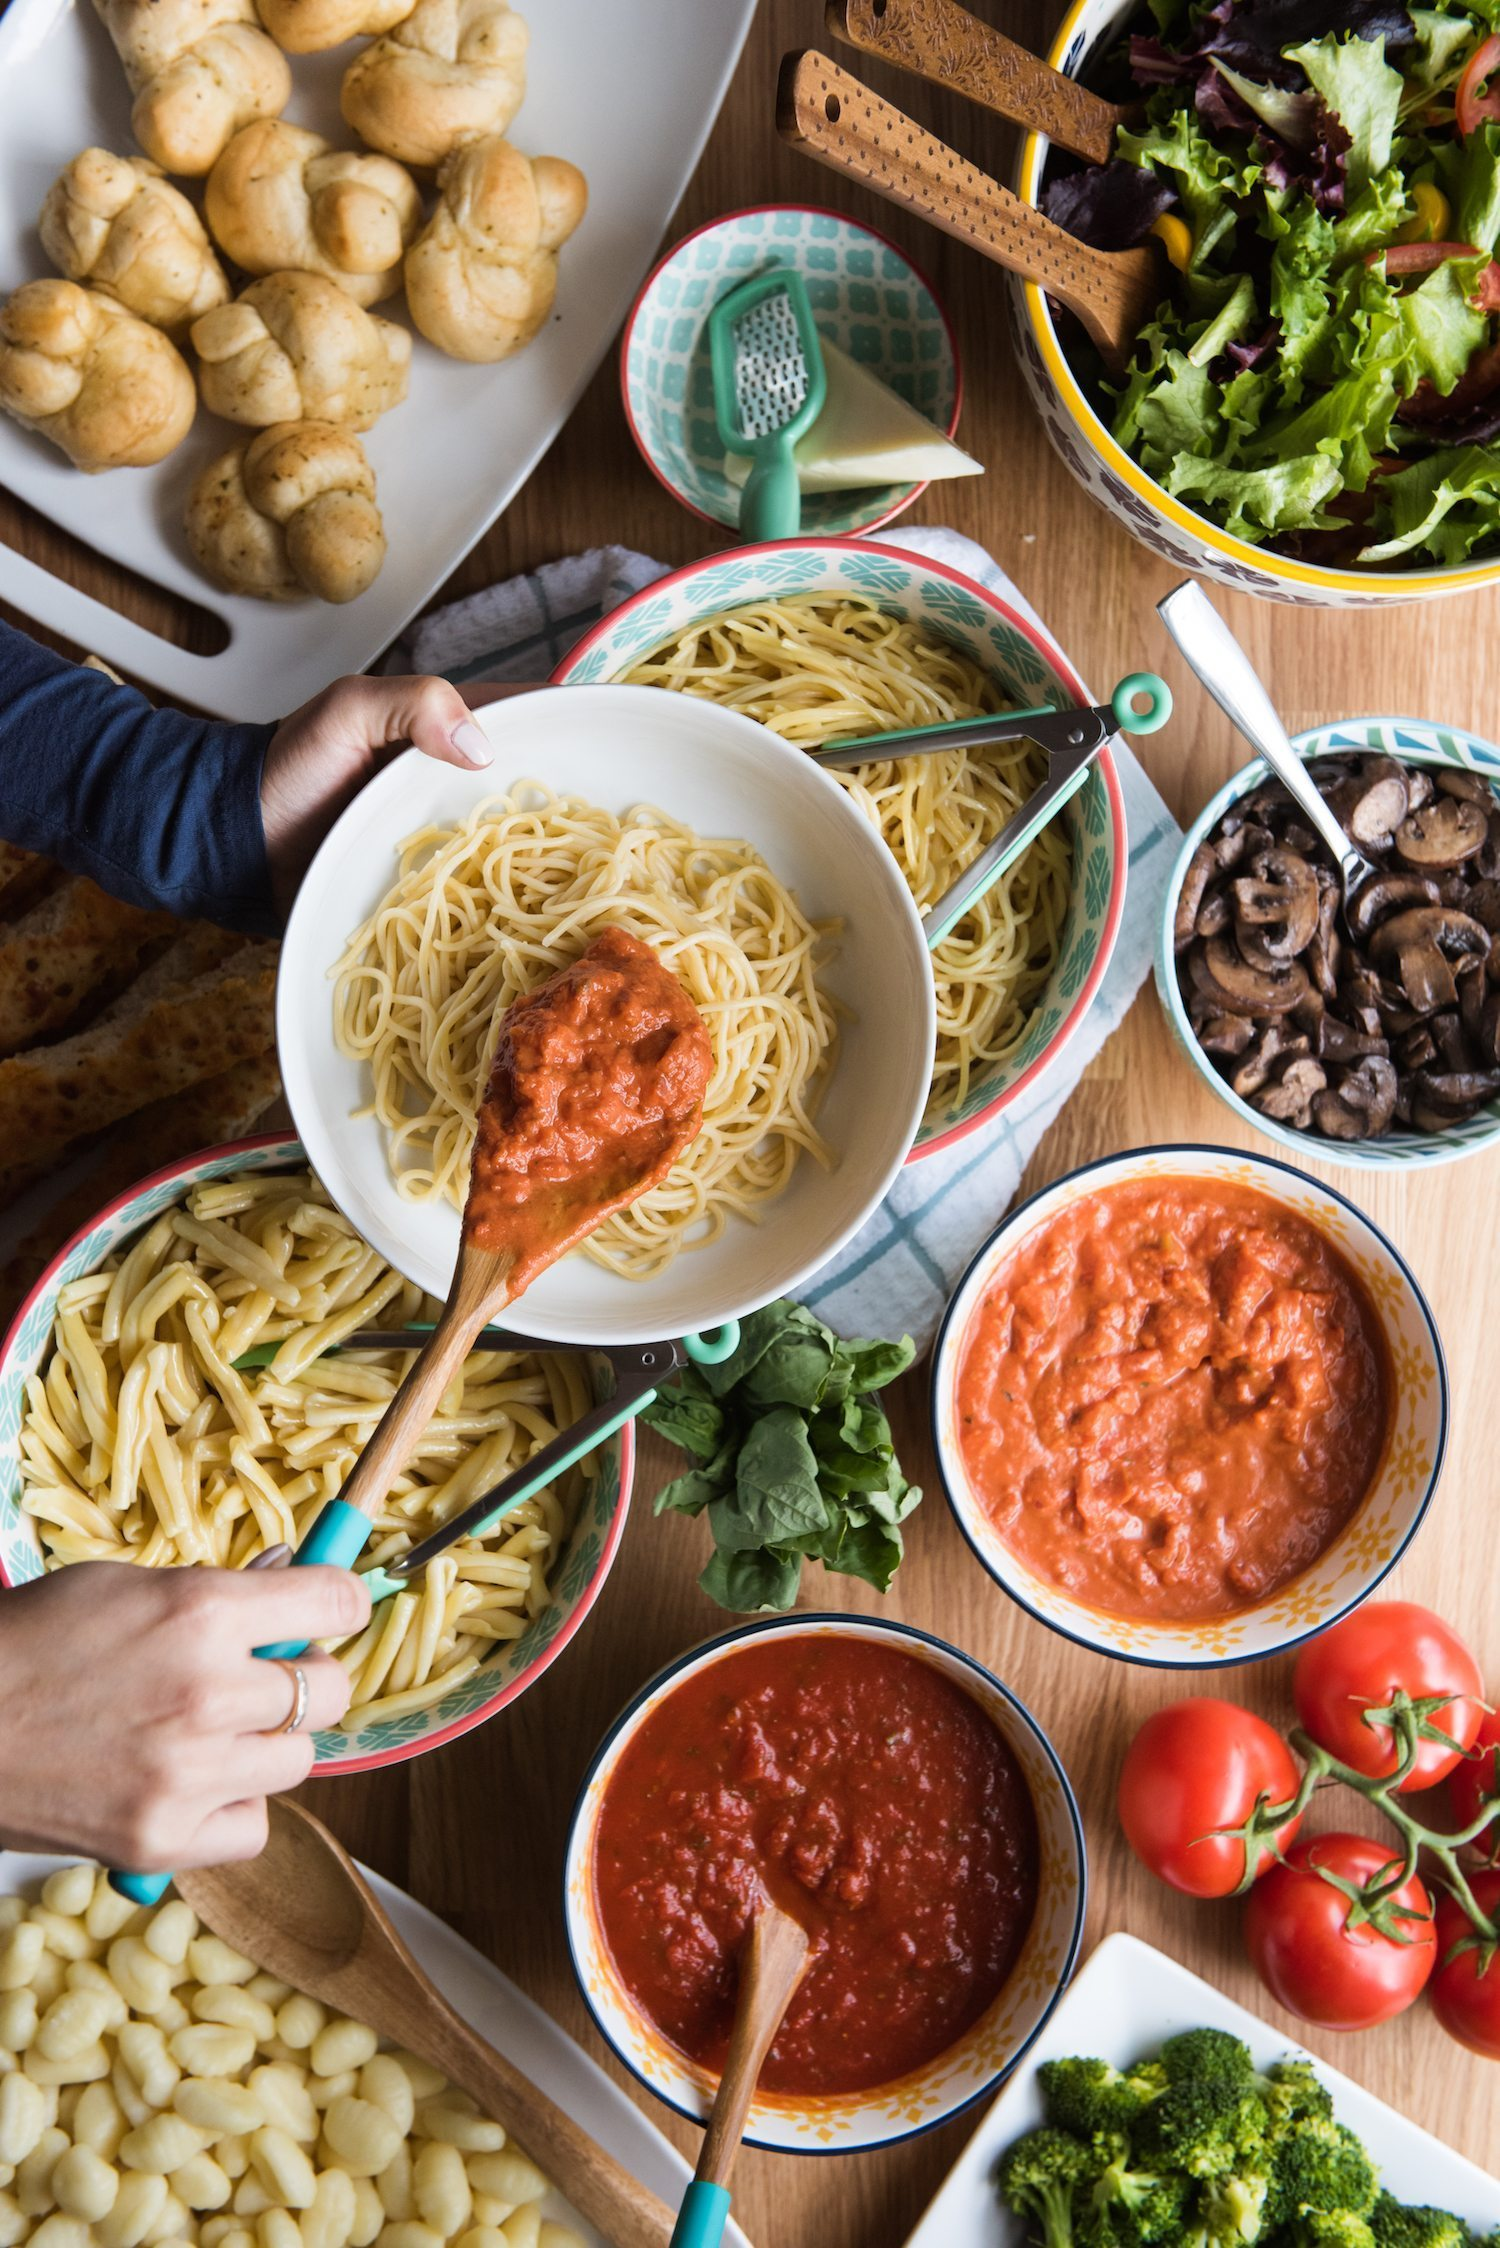 Entertain With A Make Your Own Pasta Bar Click Through To Visit The Sweetest Occasion